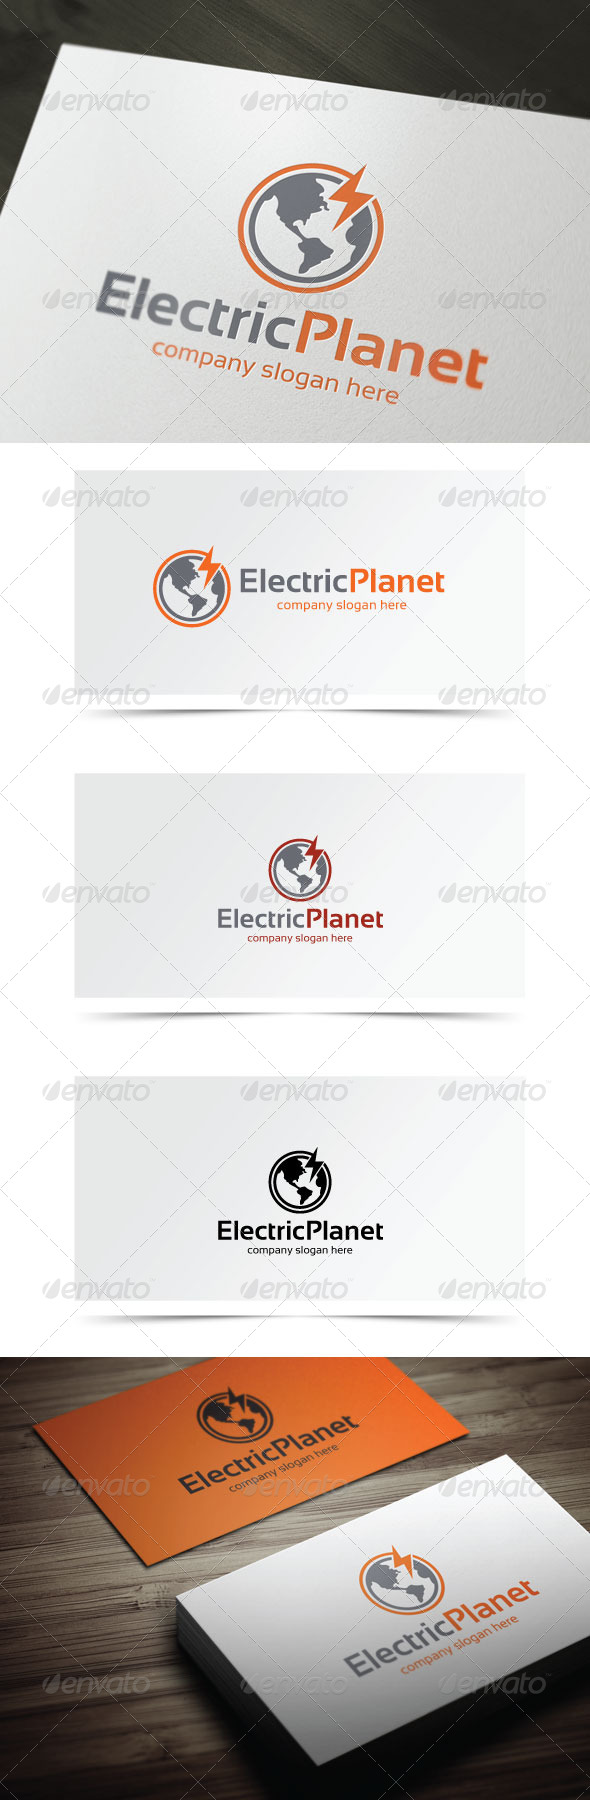 Electric Planet - Objects Logo Templates